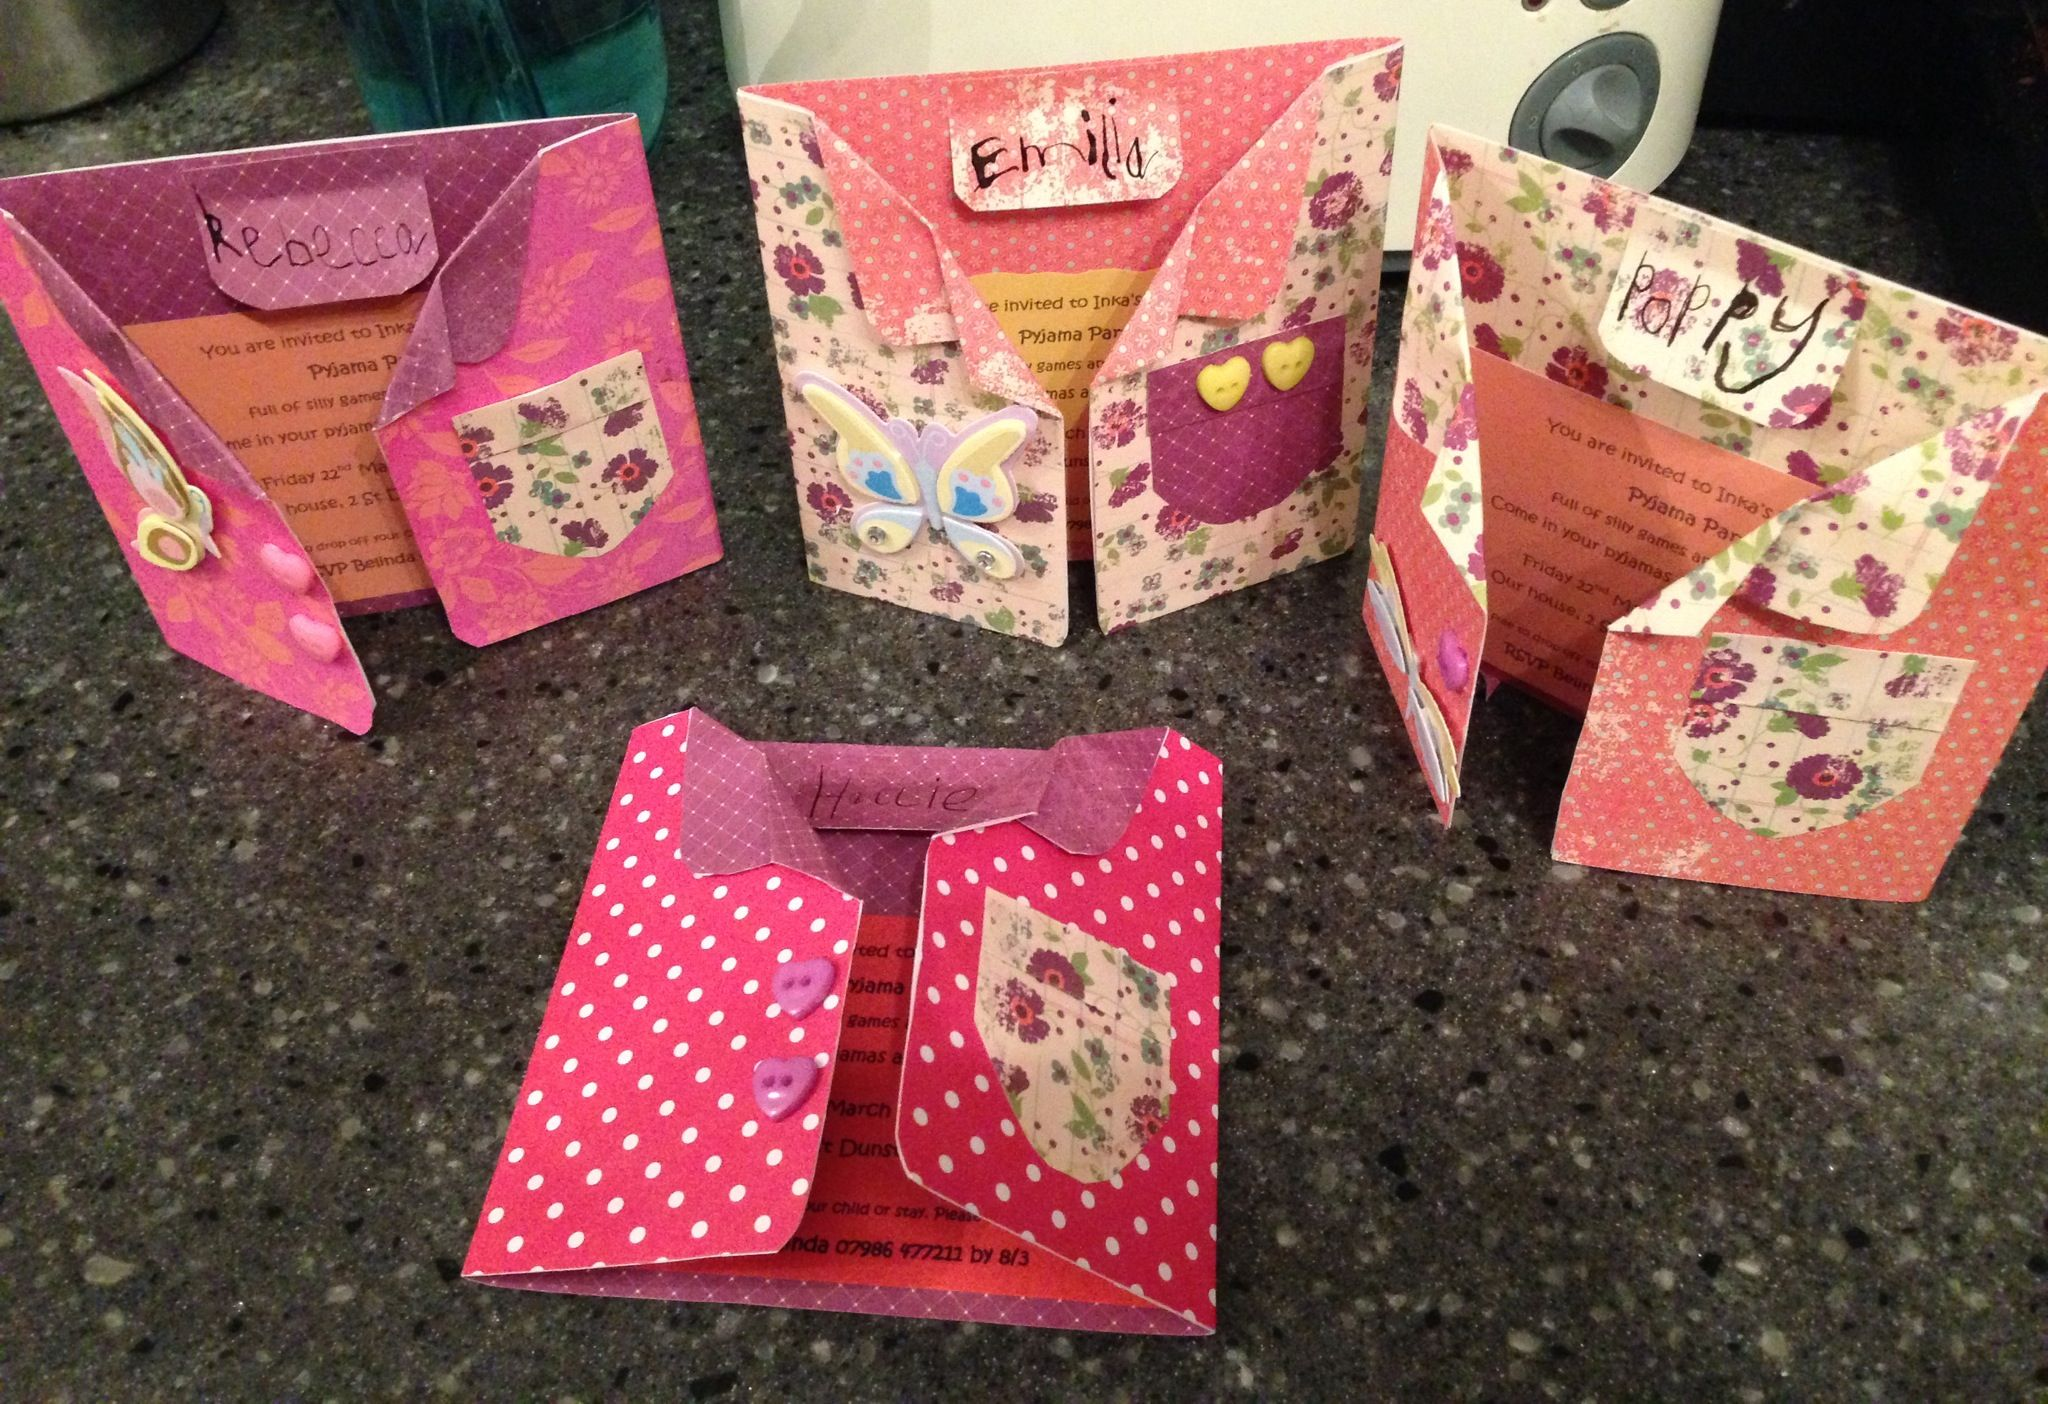 Pyjama party invitations. Folded collars and a tag is the invitees name.